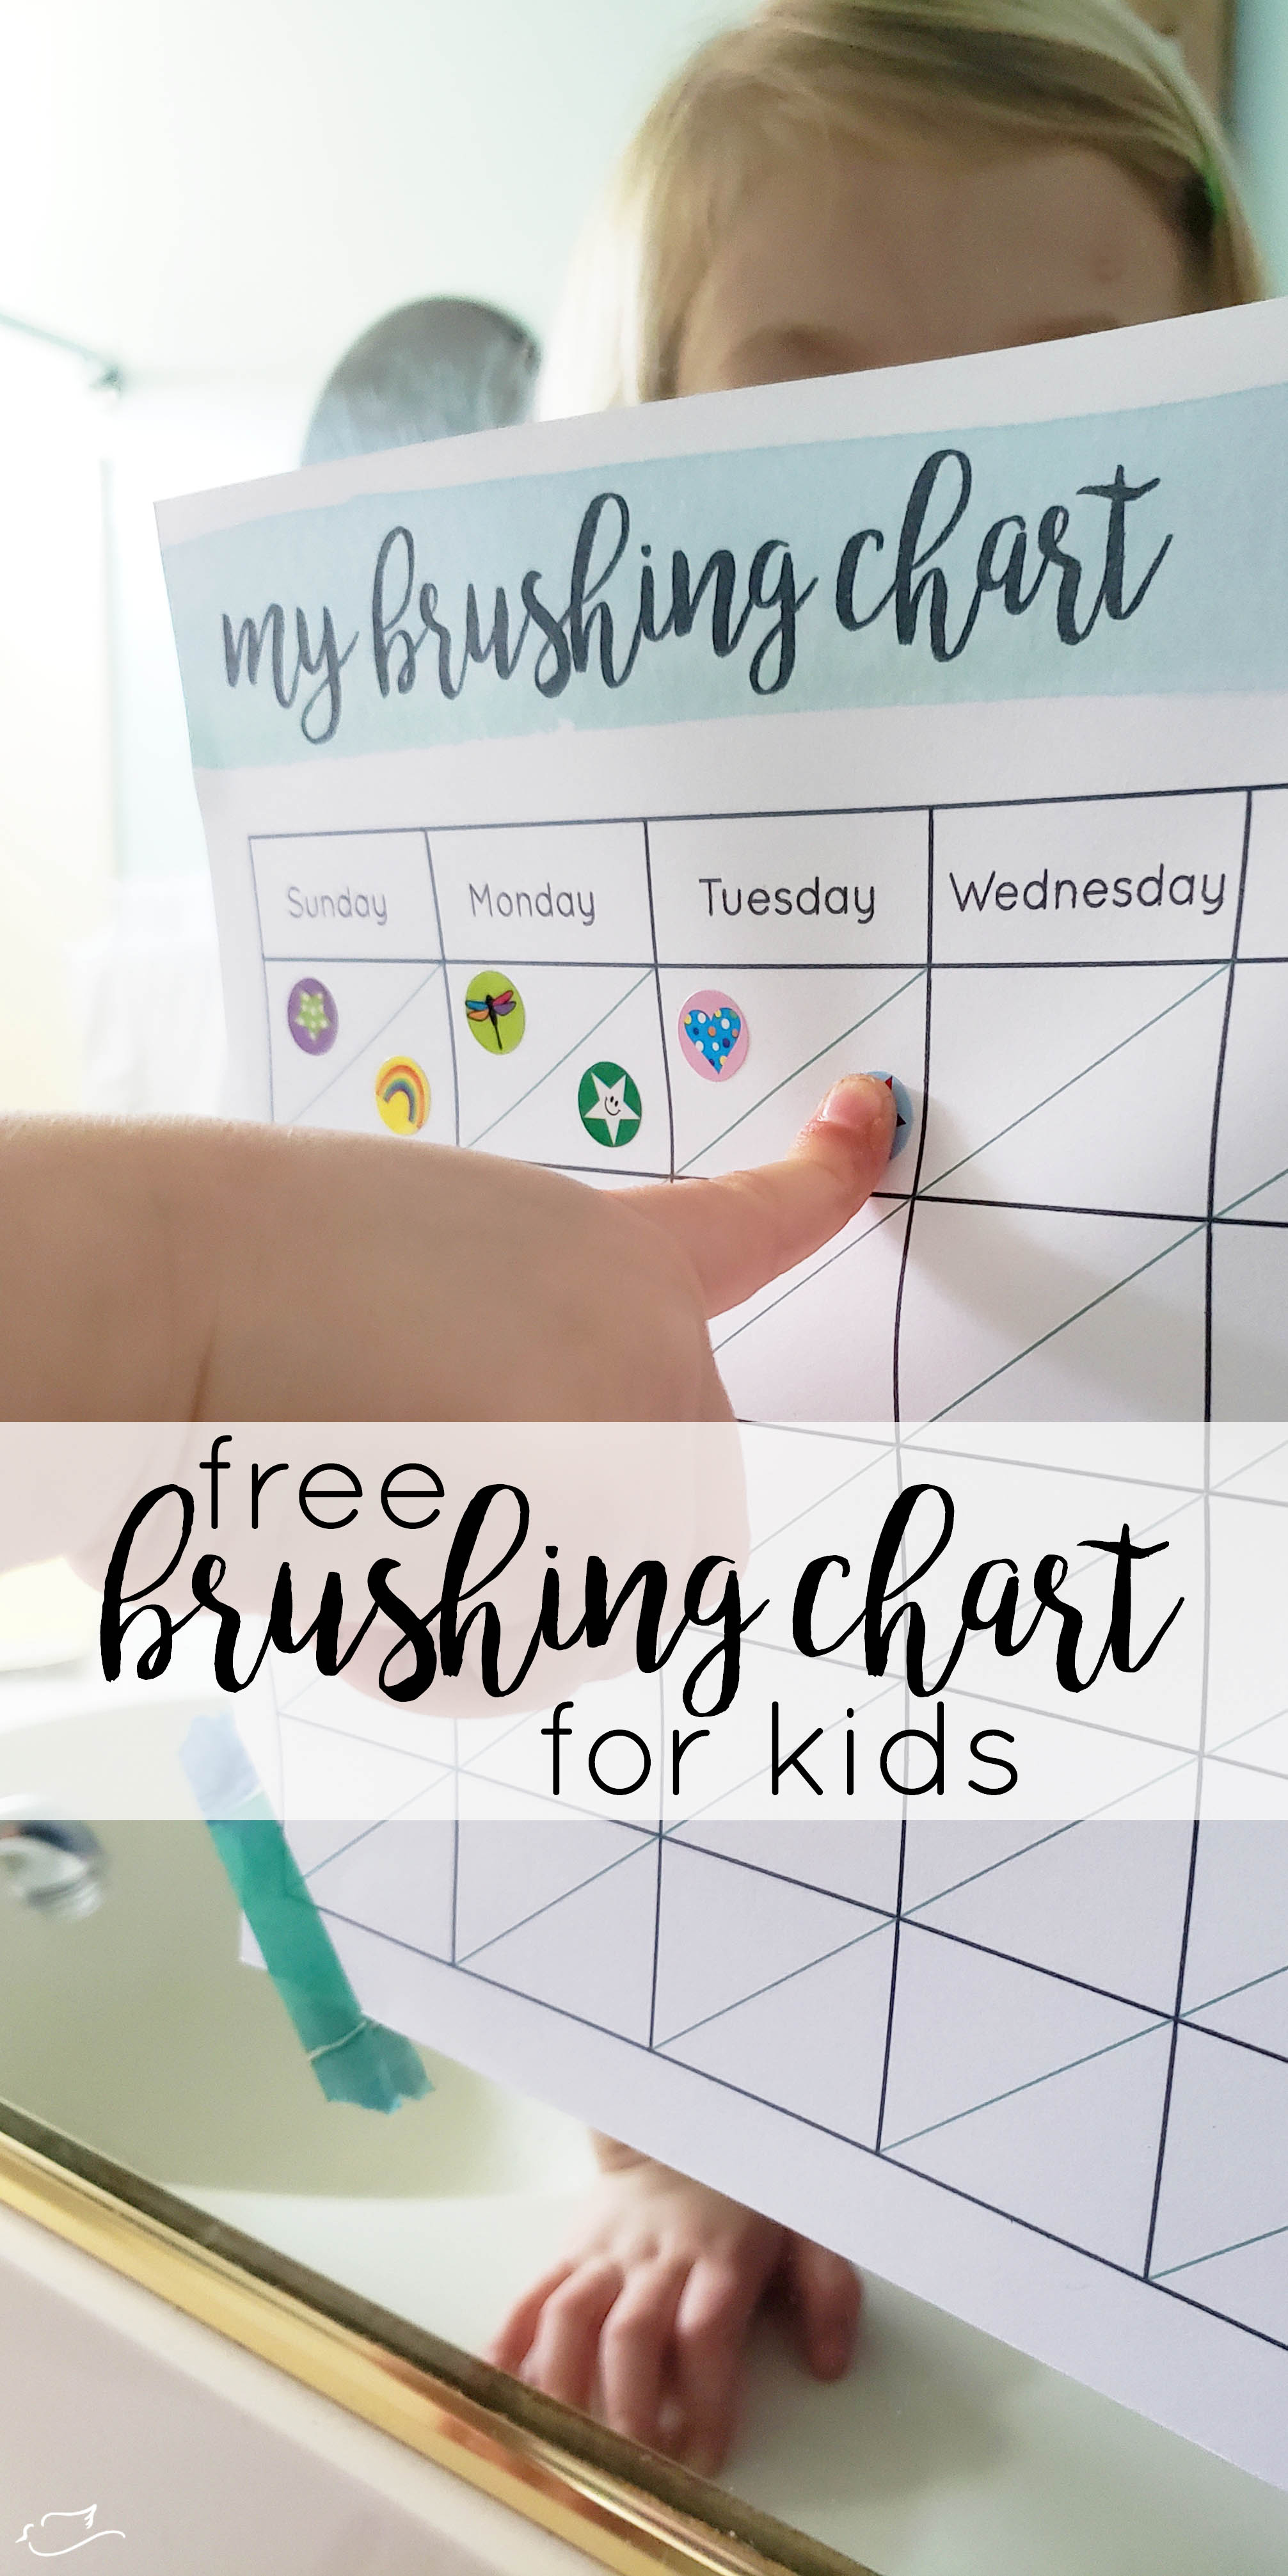 image regarding Printable Tooth Brushing Charts identify kind beneficial behaviors with a teeth brushing chart - Small Dove Blog site